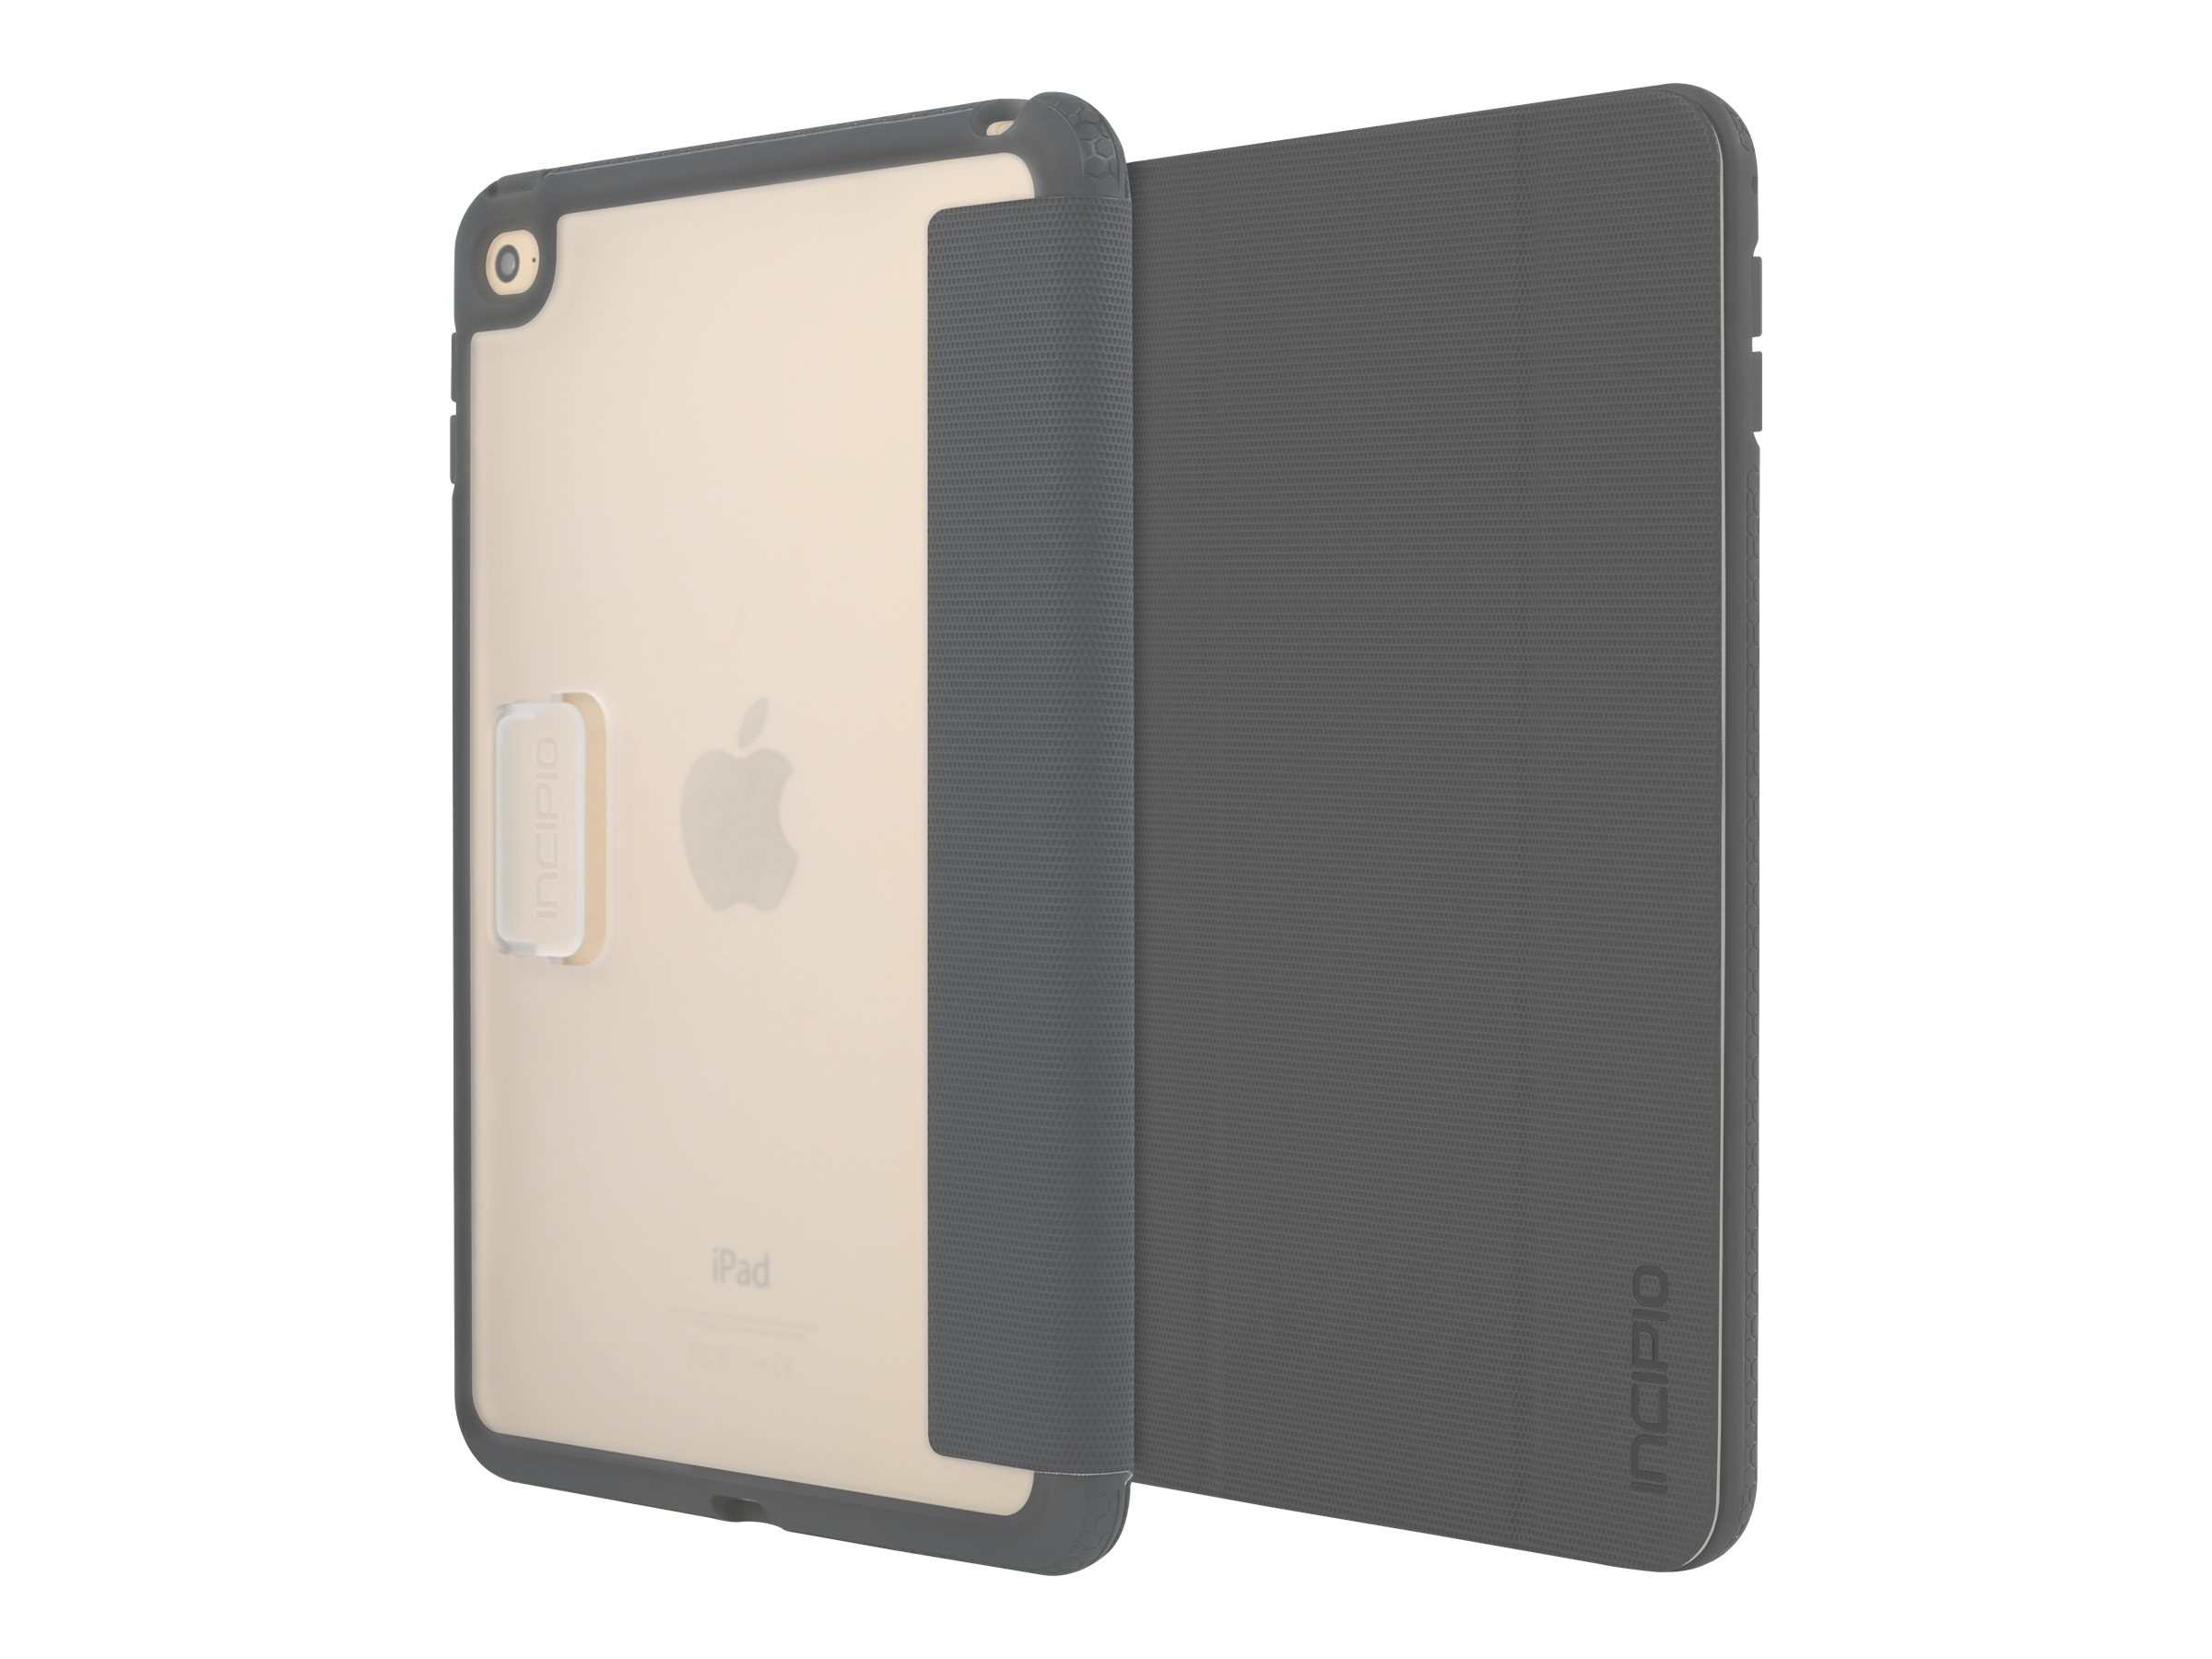 Incipio Octane Co-Molded Impact Absorbing Folio for iPad mini 4, Gray, IPD-277-GRY